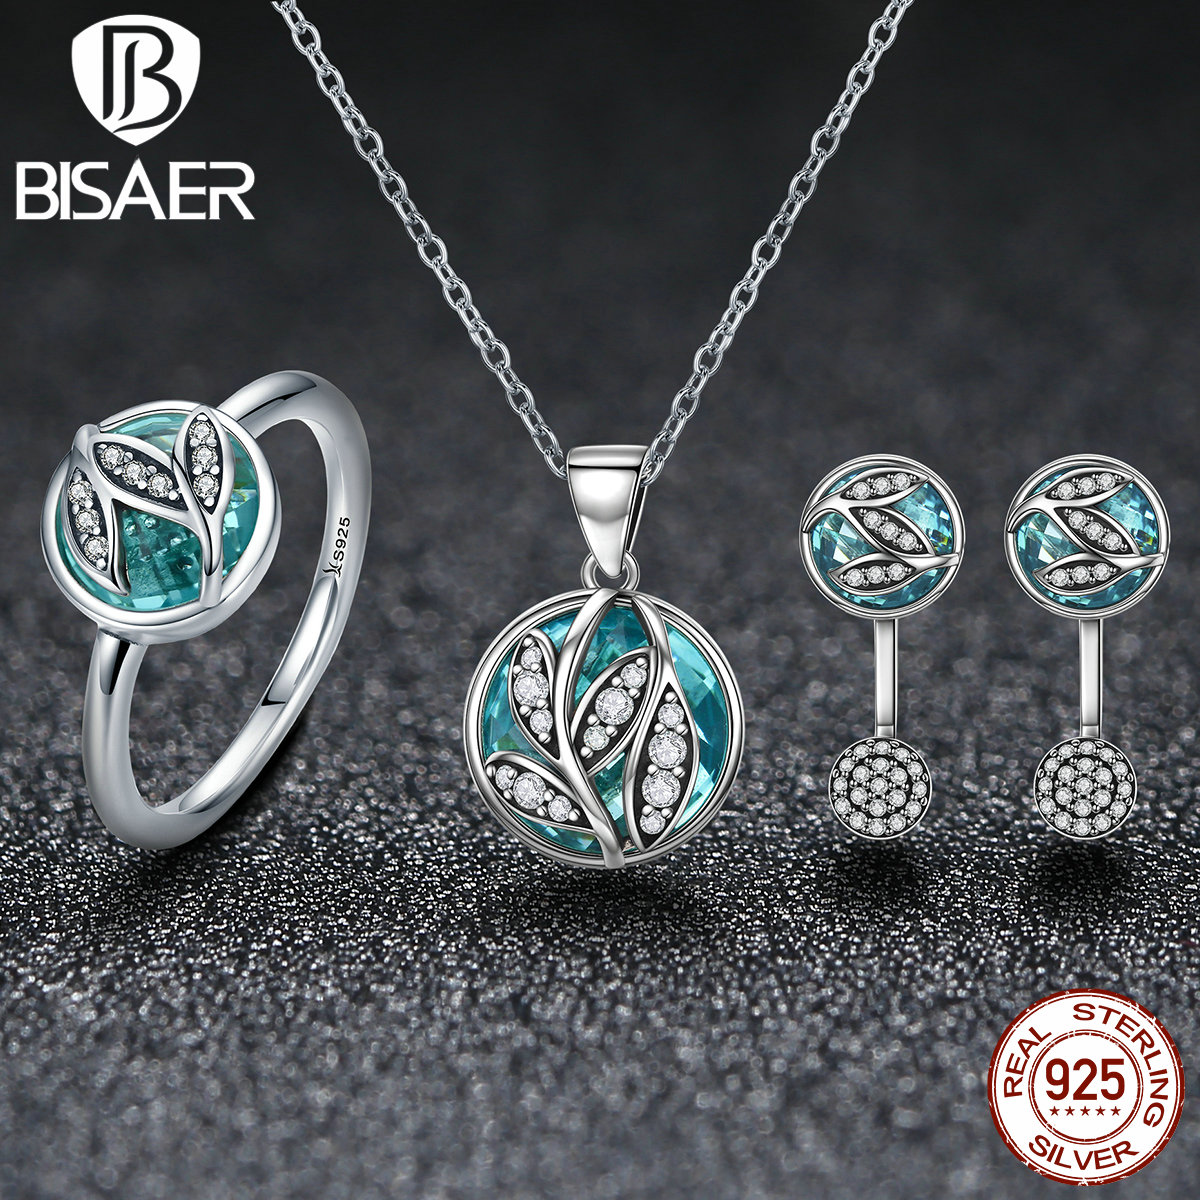 925 Sterling Silver High Quality Transparent Glass Jewelry Set Lovely Leaves Necklace/Earrings/Ring Women Fashion Jewelry Sets925 Sterling Silver High Quality Transparent Glass Jewelry Set Lovely Leaves Necklace/Earrings/Ring Women Fashion Jewelry Sets